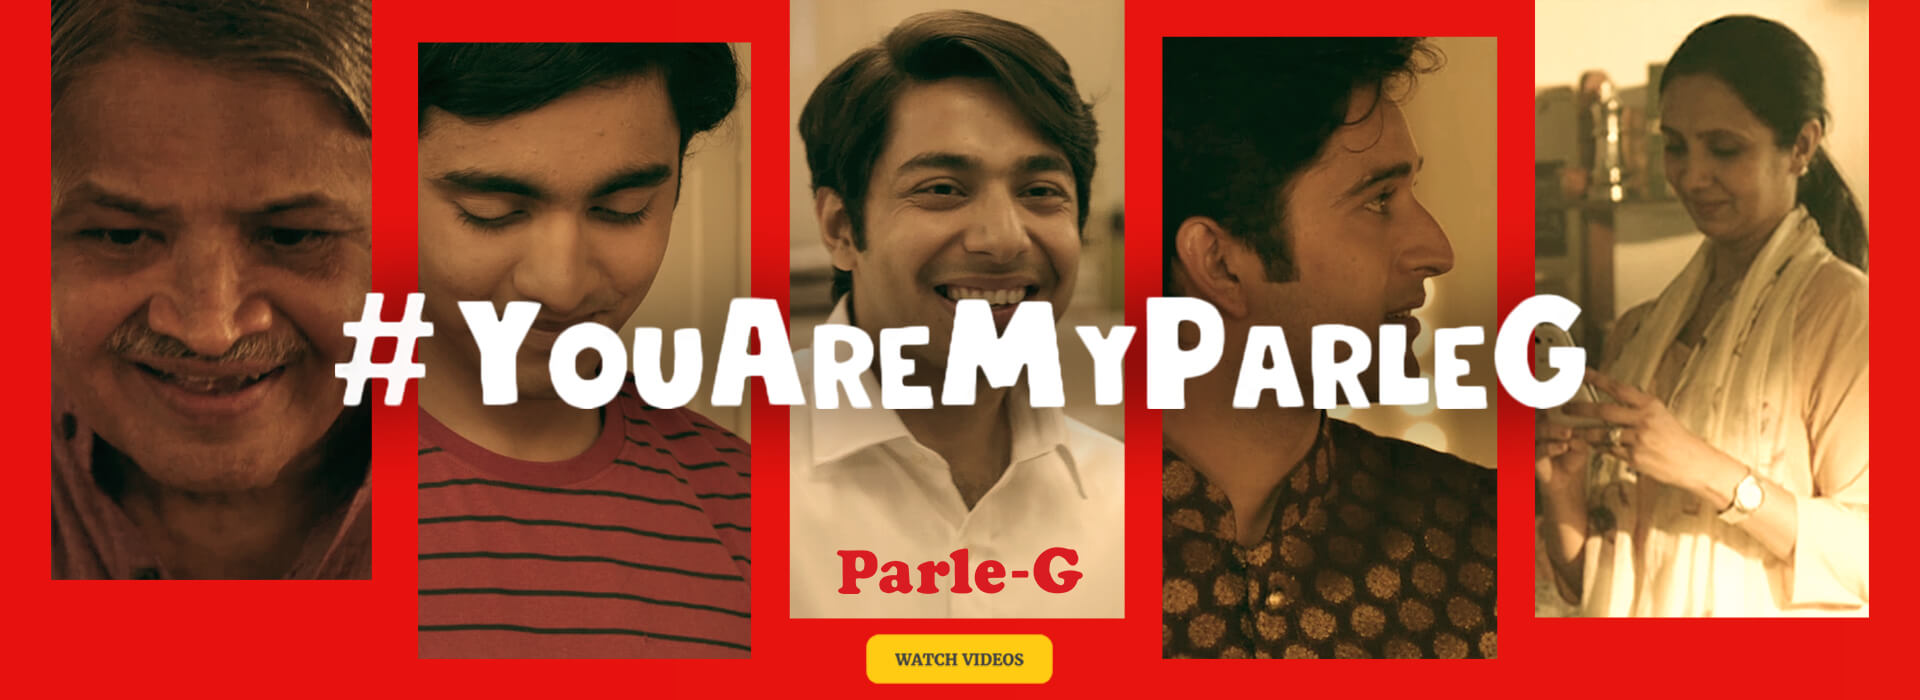 You are my Parle-G